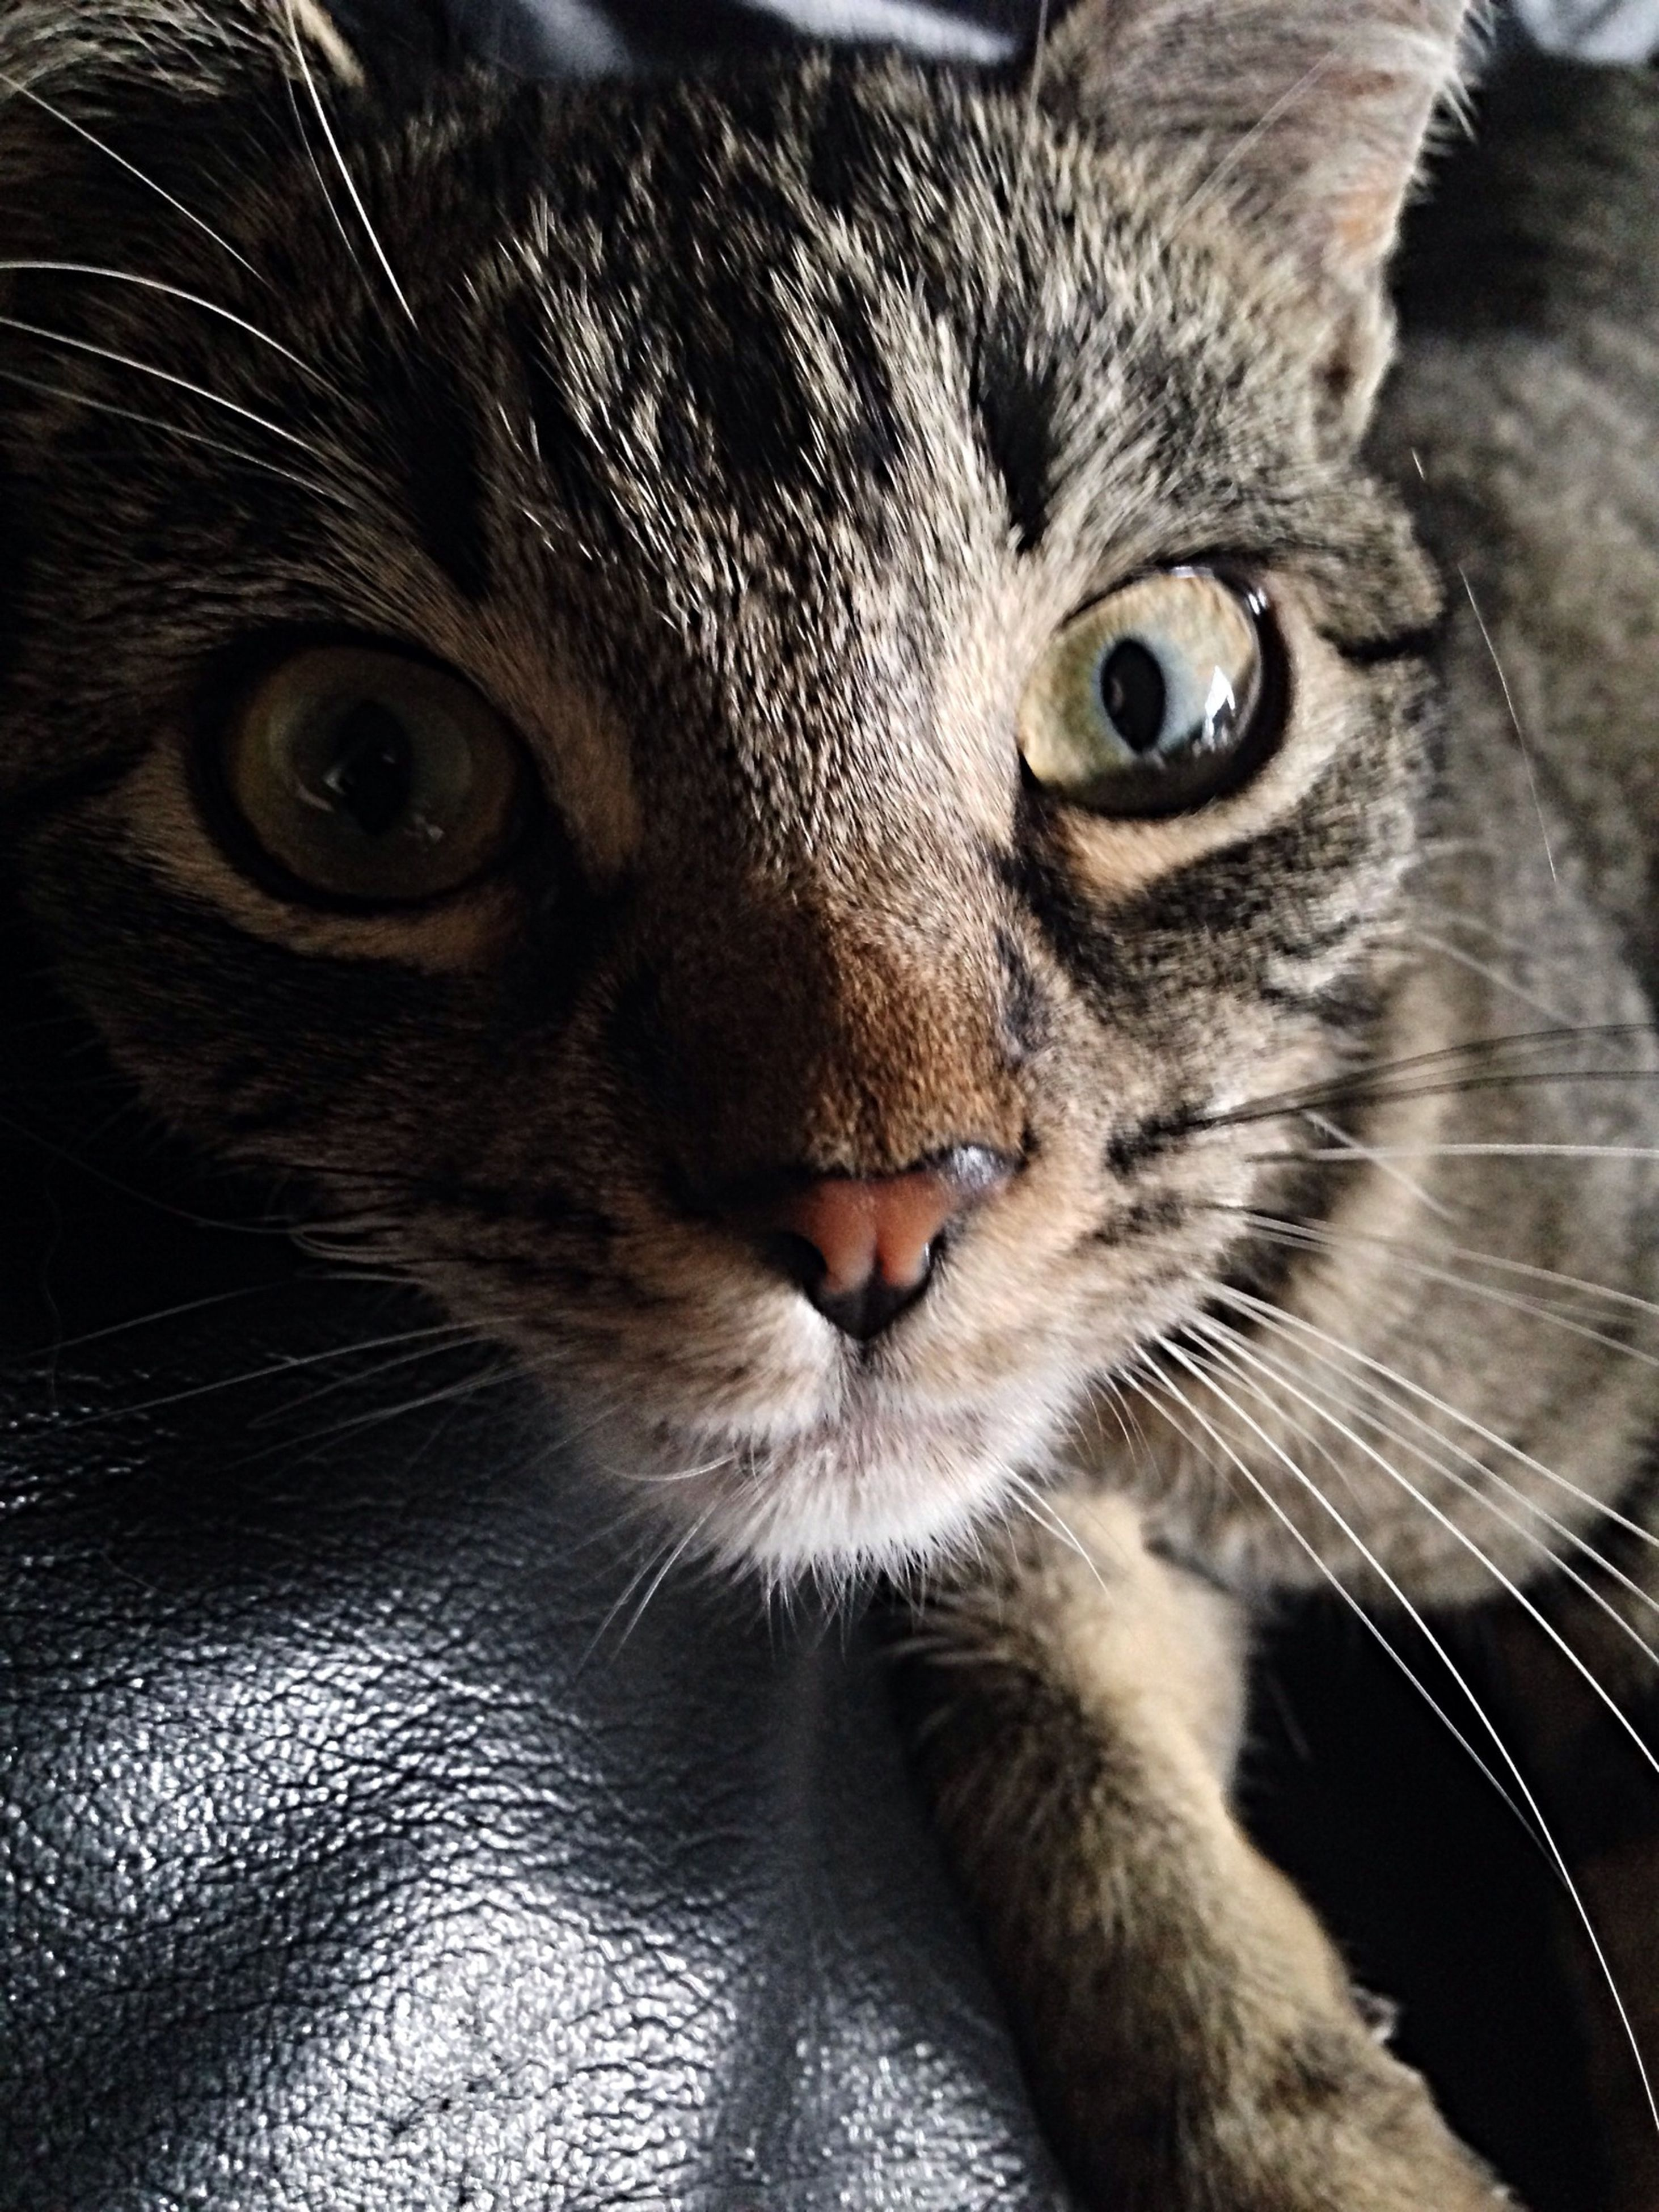 domestic cat, cat, pets, one animal, domestic animals, animal themes, feline, indoors, whisker, mammal, looking at camera, portrait, close-up, animal eye, animal head, staring, alertness, animal body part, high angle view